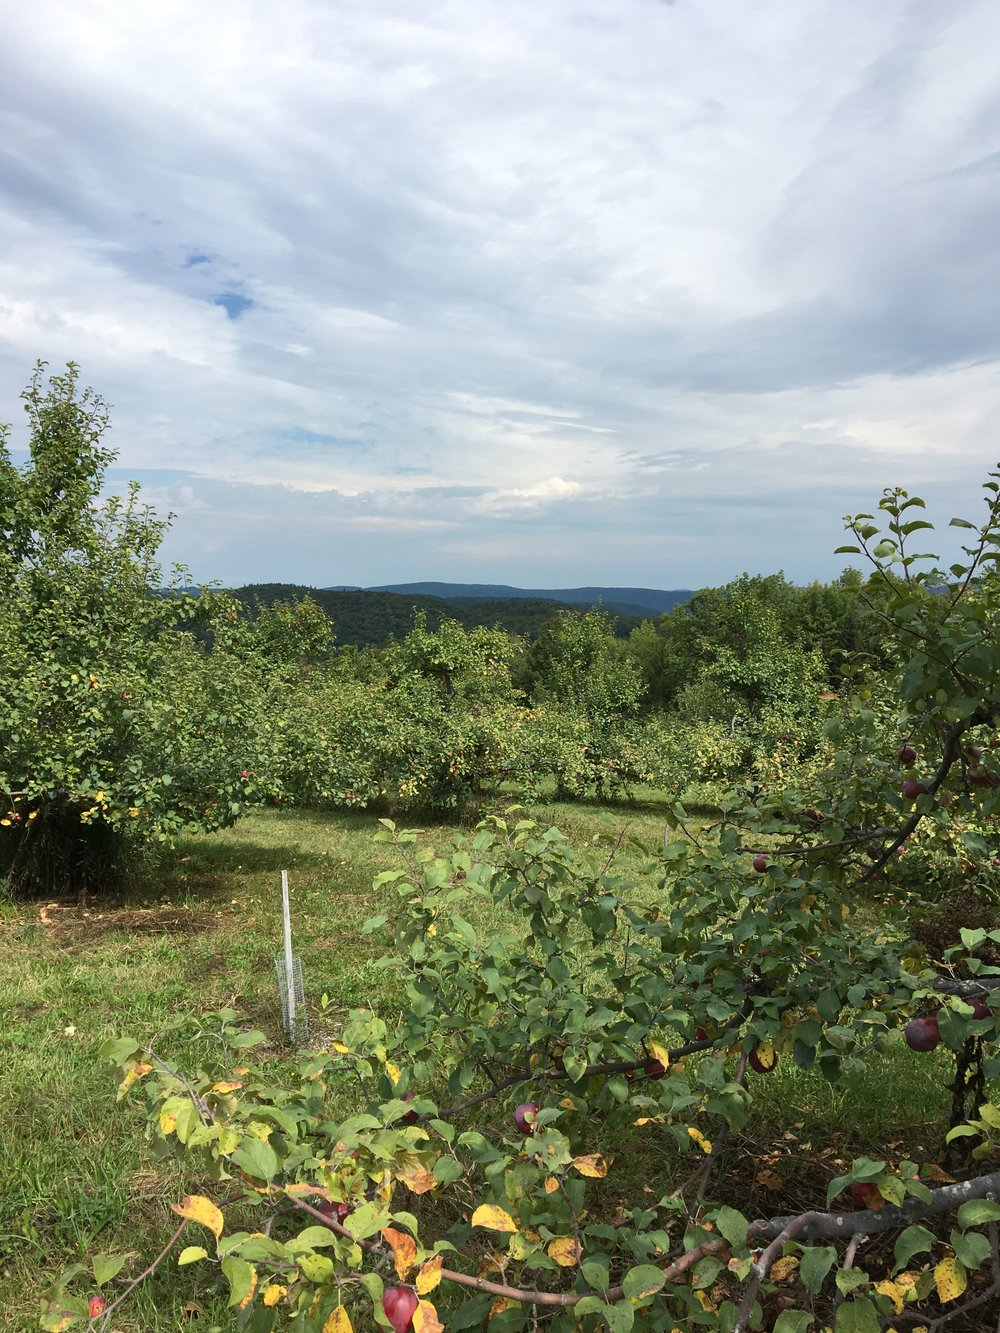 That Berkshires view from the orchard. 😍